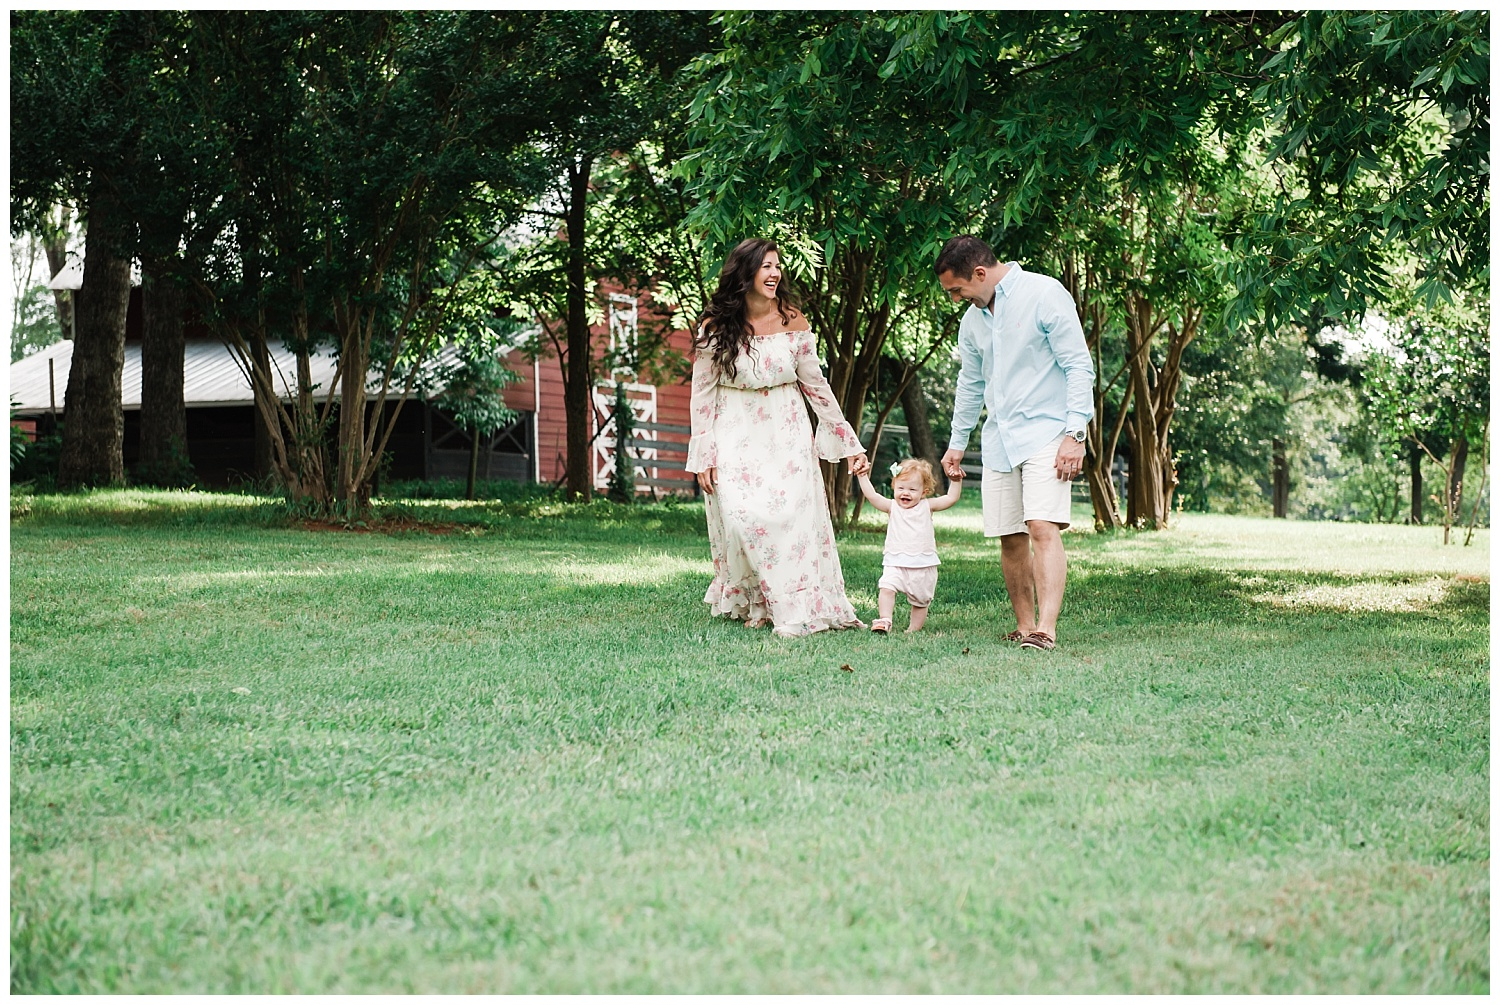 Kimberly Cabe Photography greenville photographer